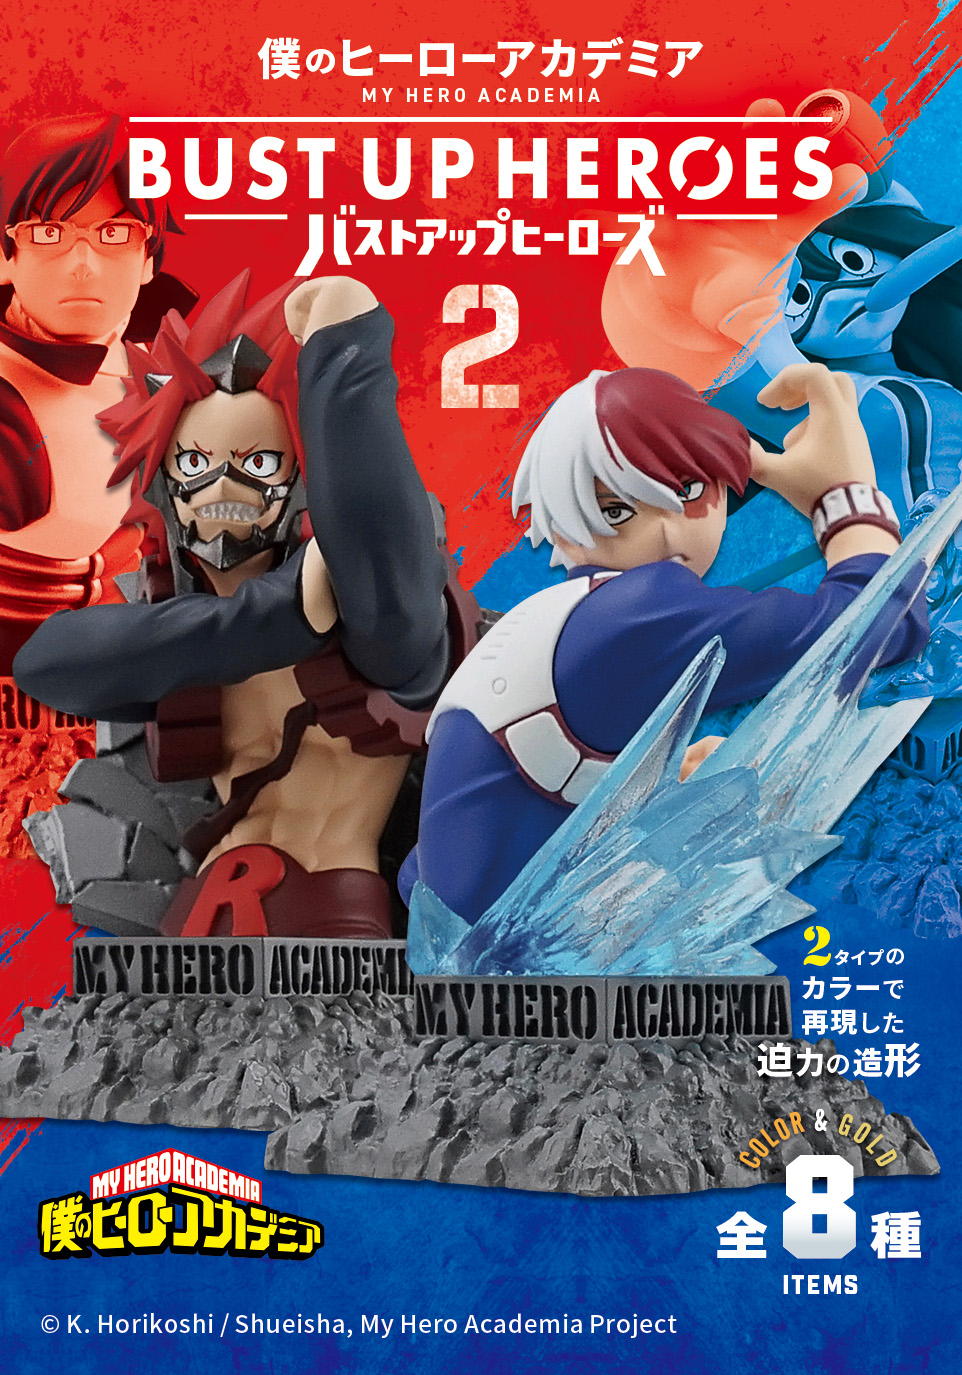 F-Toys My Hero Academia Bust Up Heroes 2, 8-Pack Box with all 8 Varieties